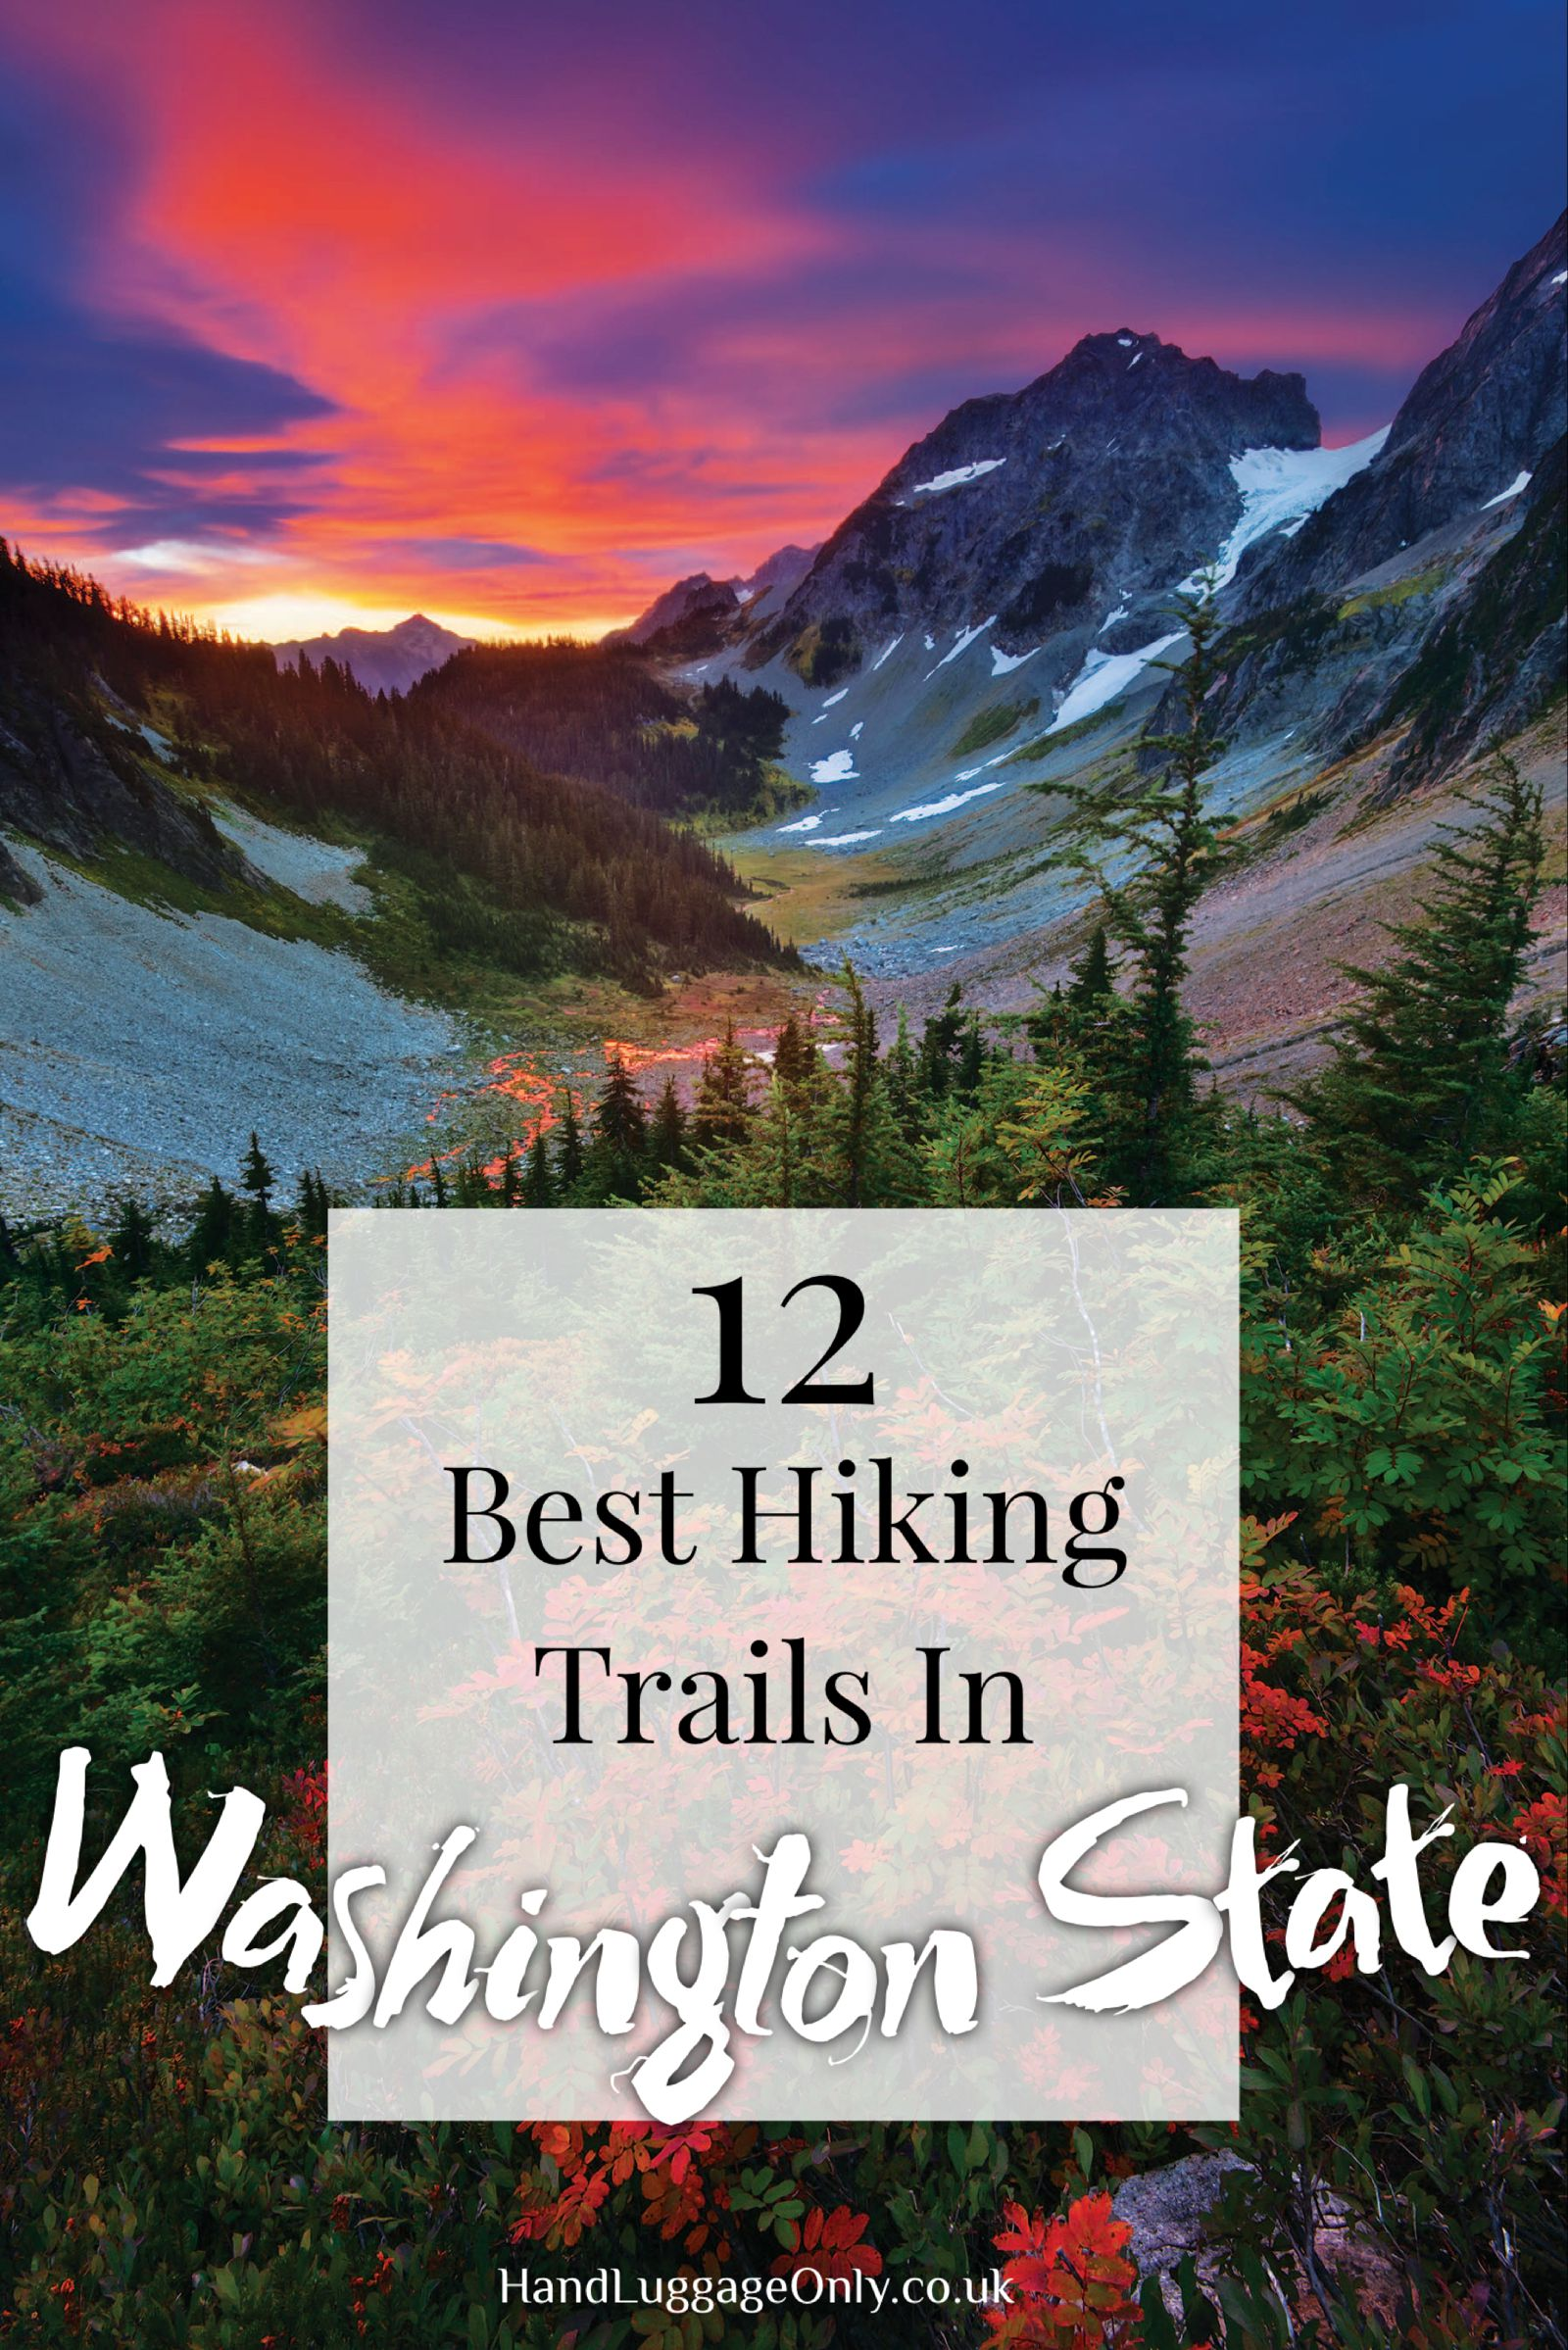 12 Of The Best Hiking Routes In Washington State, USA (1)